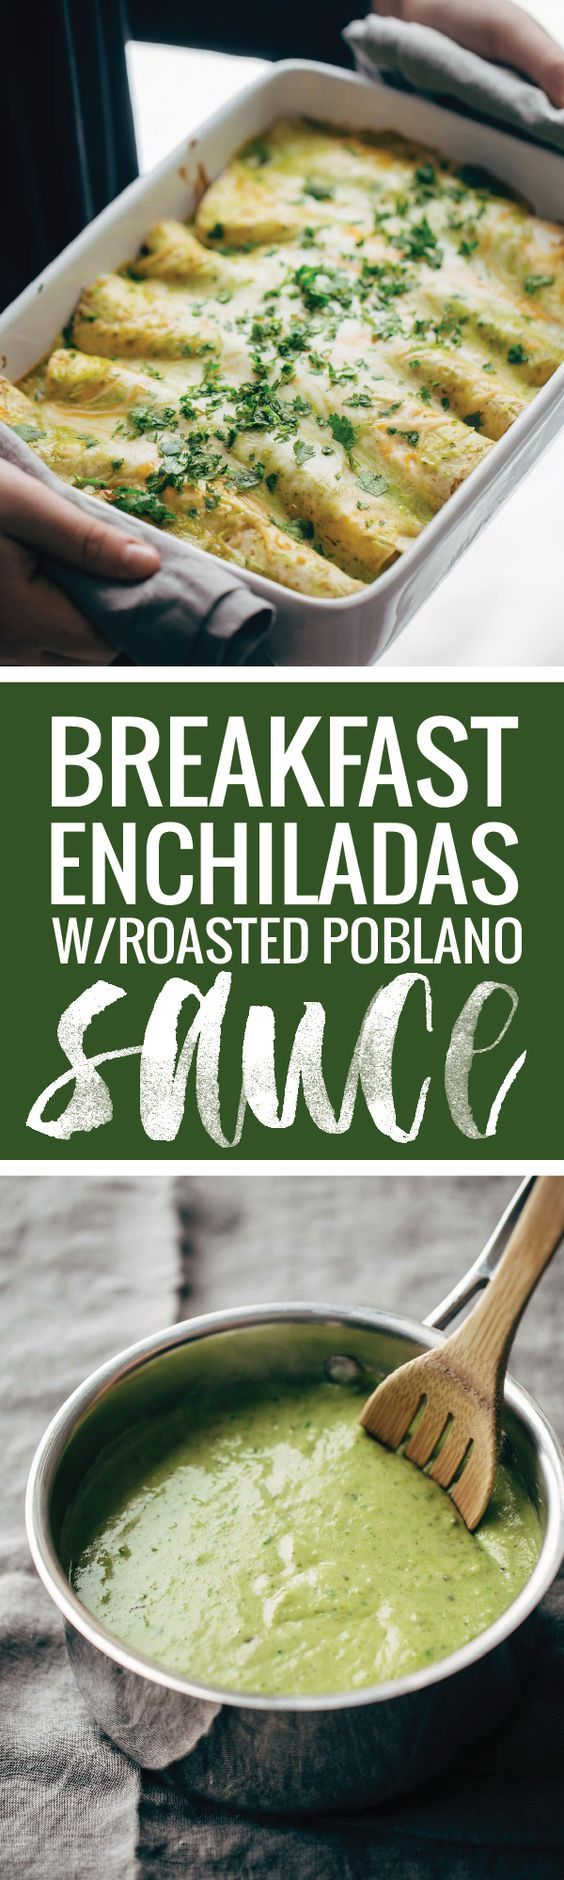 Breakfast Enchiladas with Roasted Poblano Sauce - filled with eggs, ground turkey, spicy potatoes and cheese. Perfect recipe for brunch!